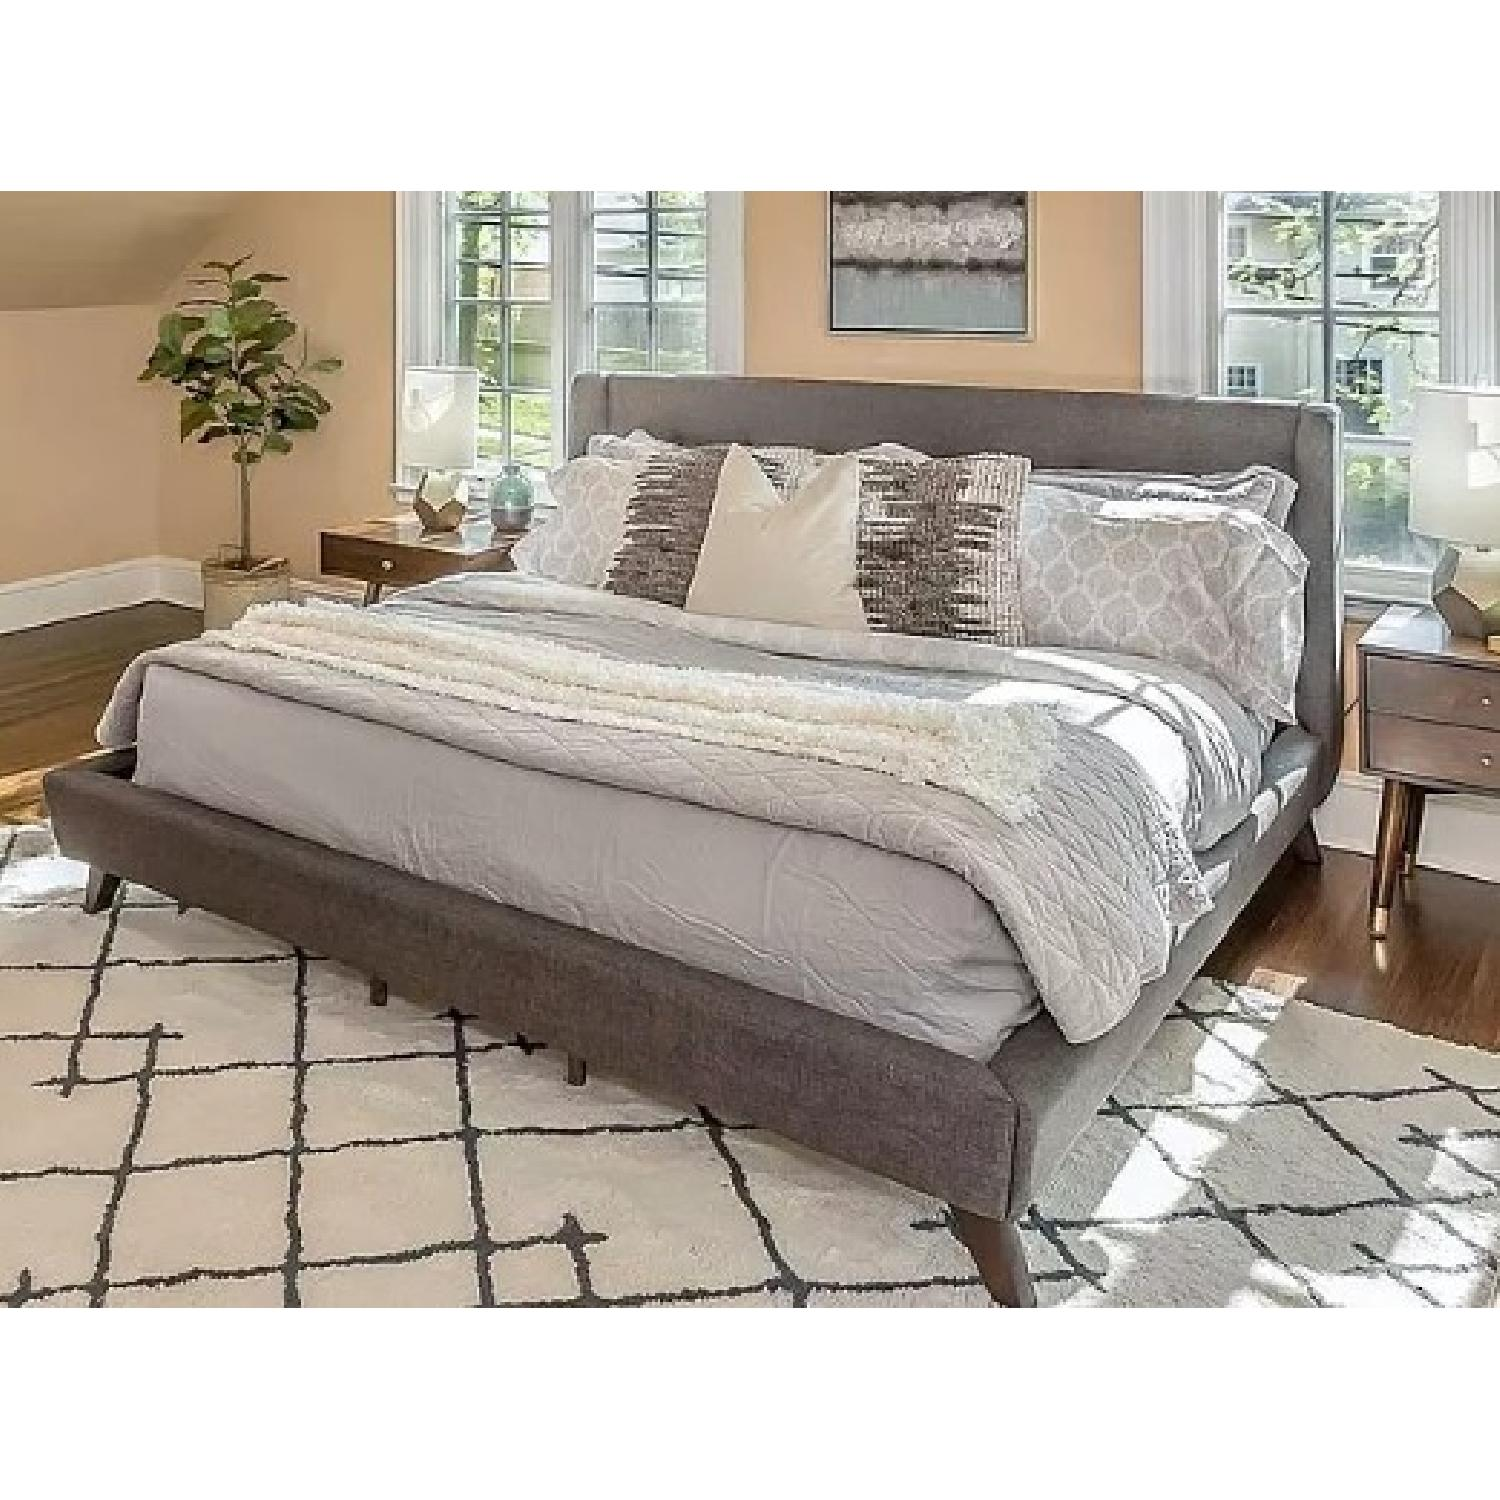 Mid Century Style King Platform Bed in Grey Fabric - image-2